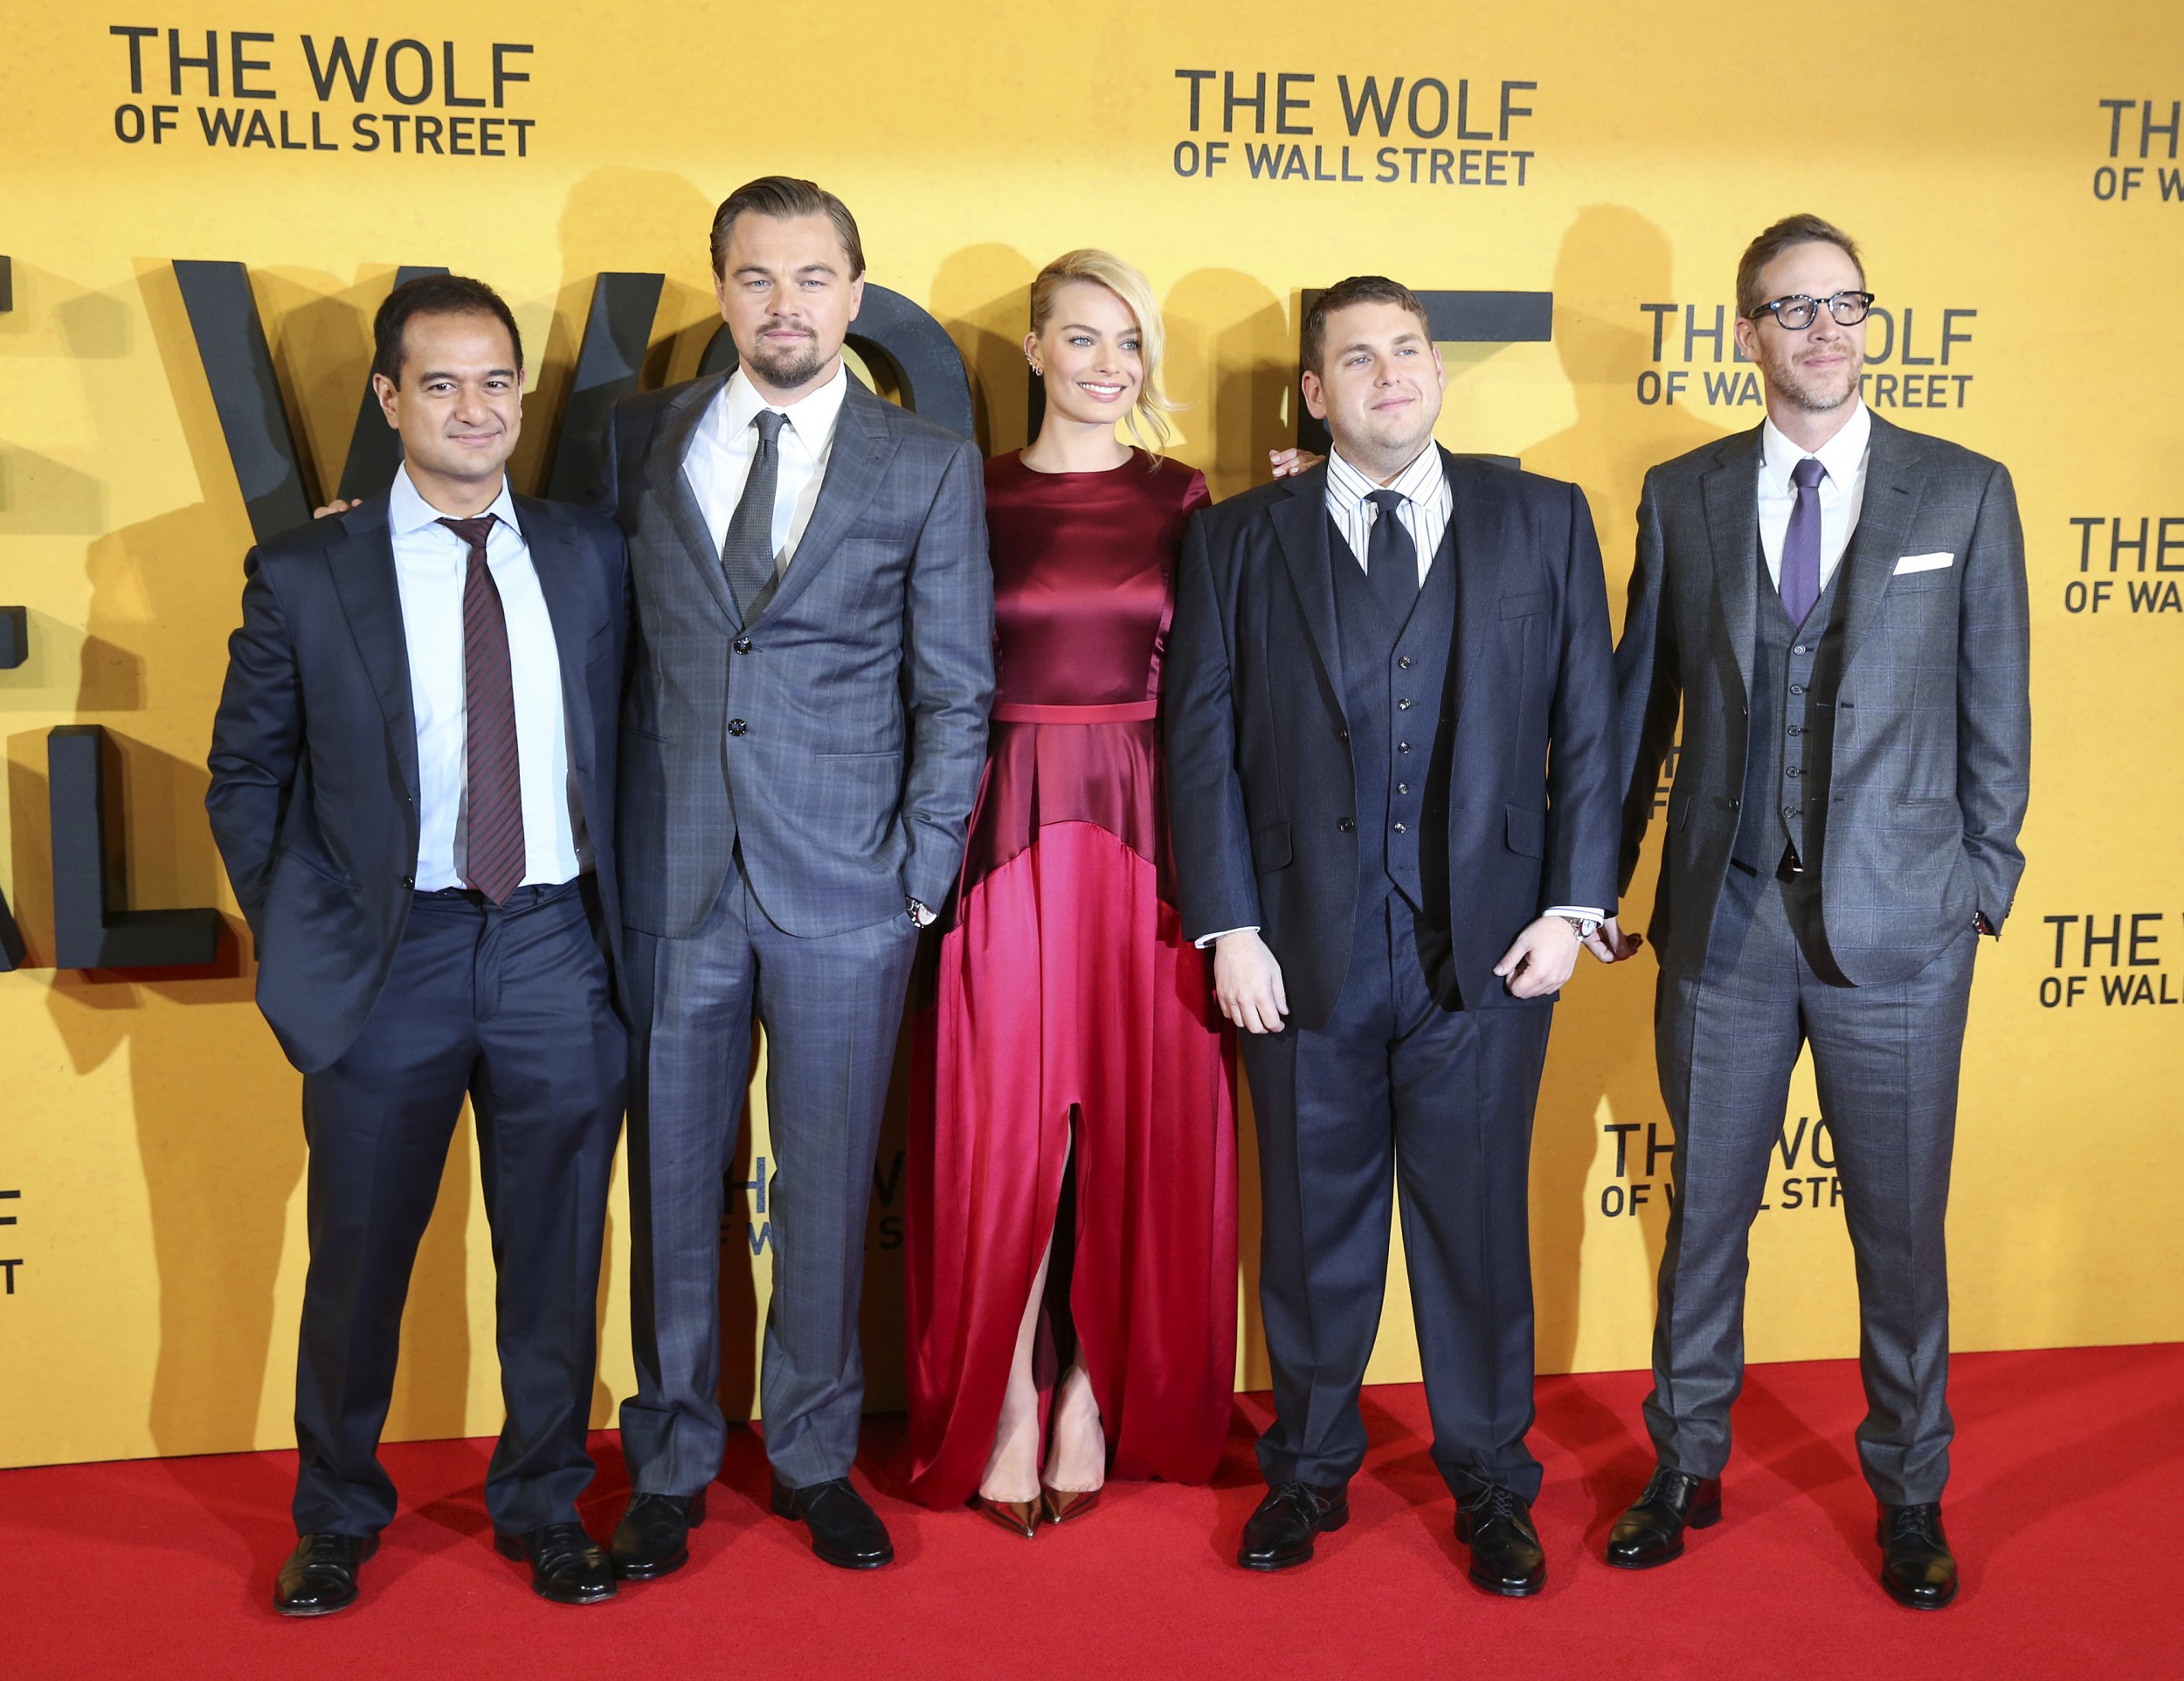 Wolf of Wall Street,' 'Frozen' and 'The Hobbit' Top Pirated